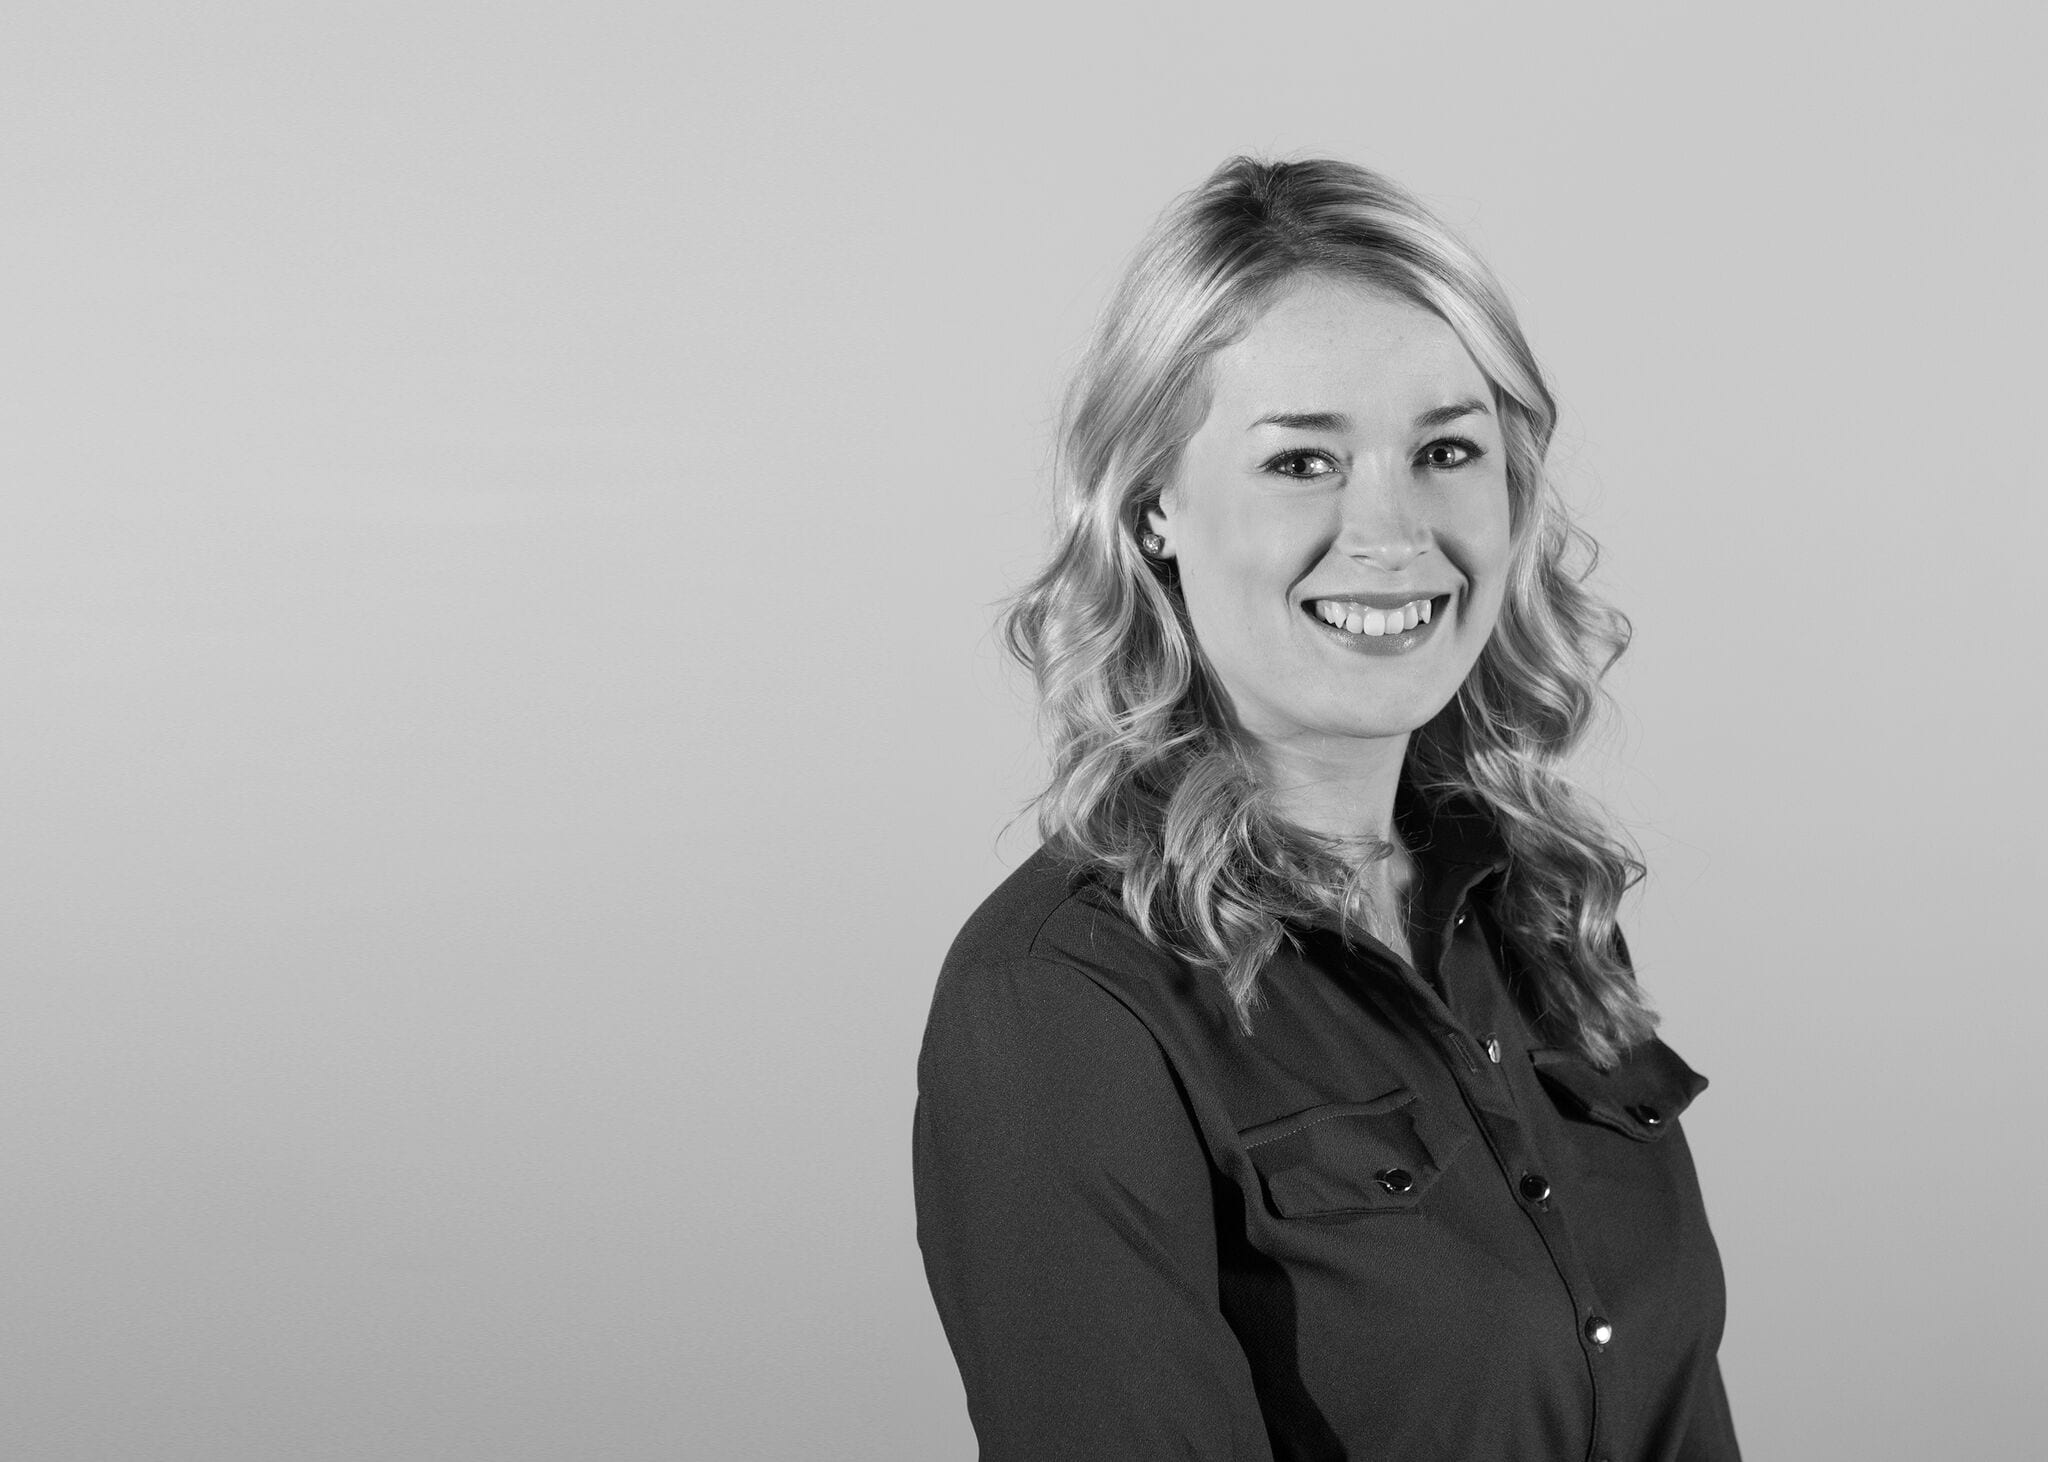 Our talented Sales and Marketing Assistant Kate